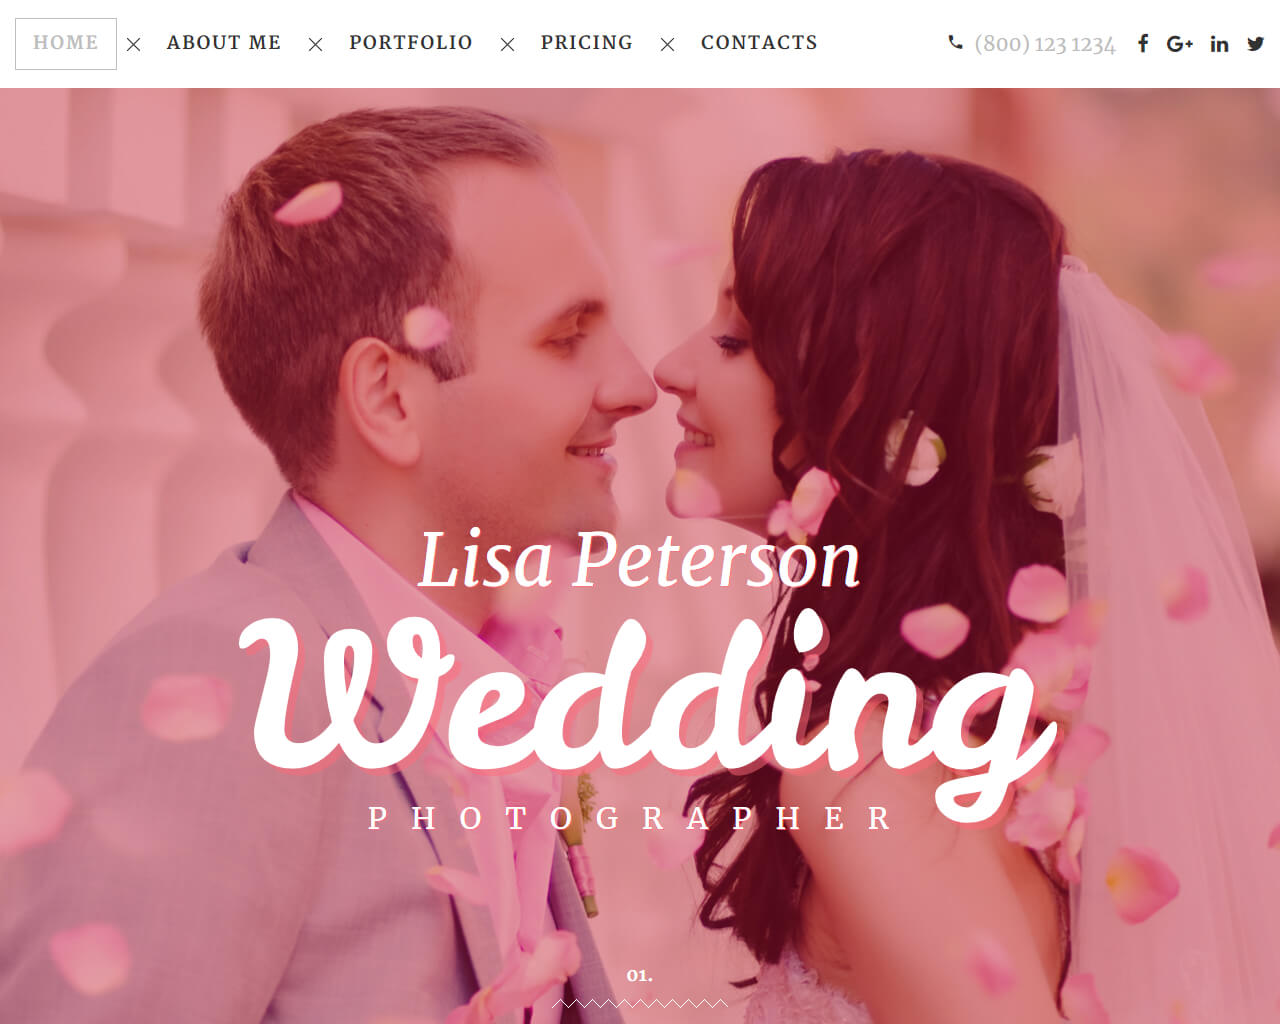 Lisa Peterson Website Template